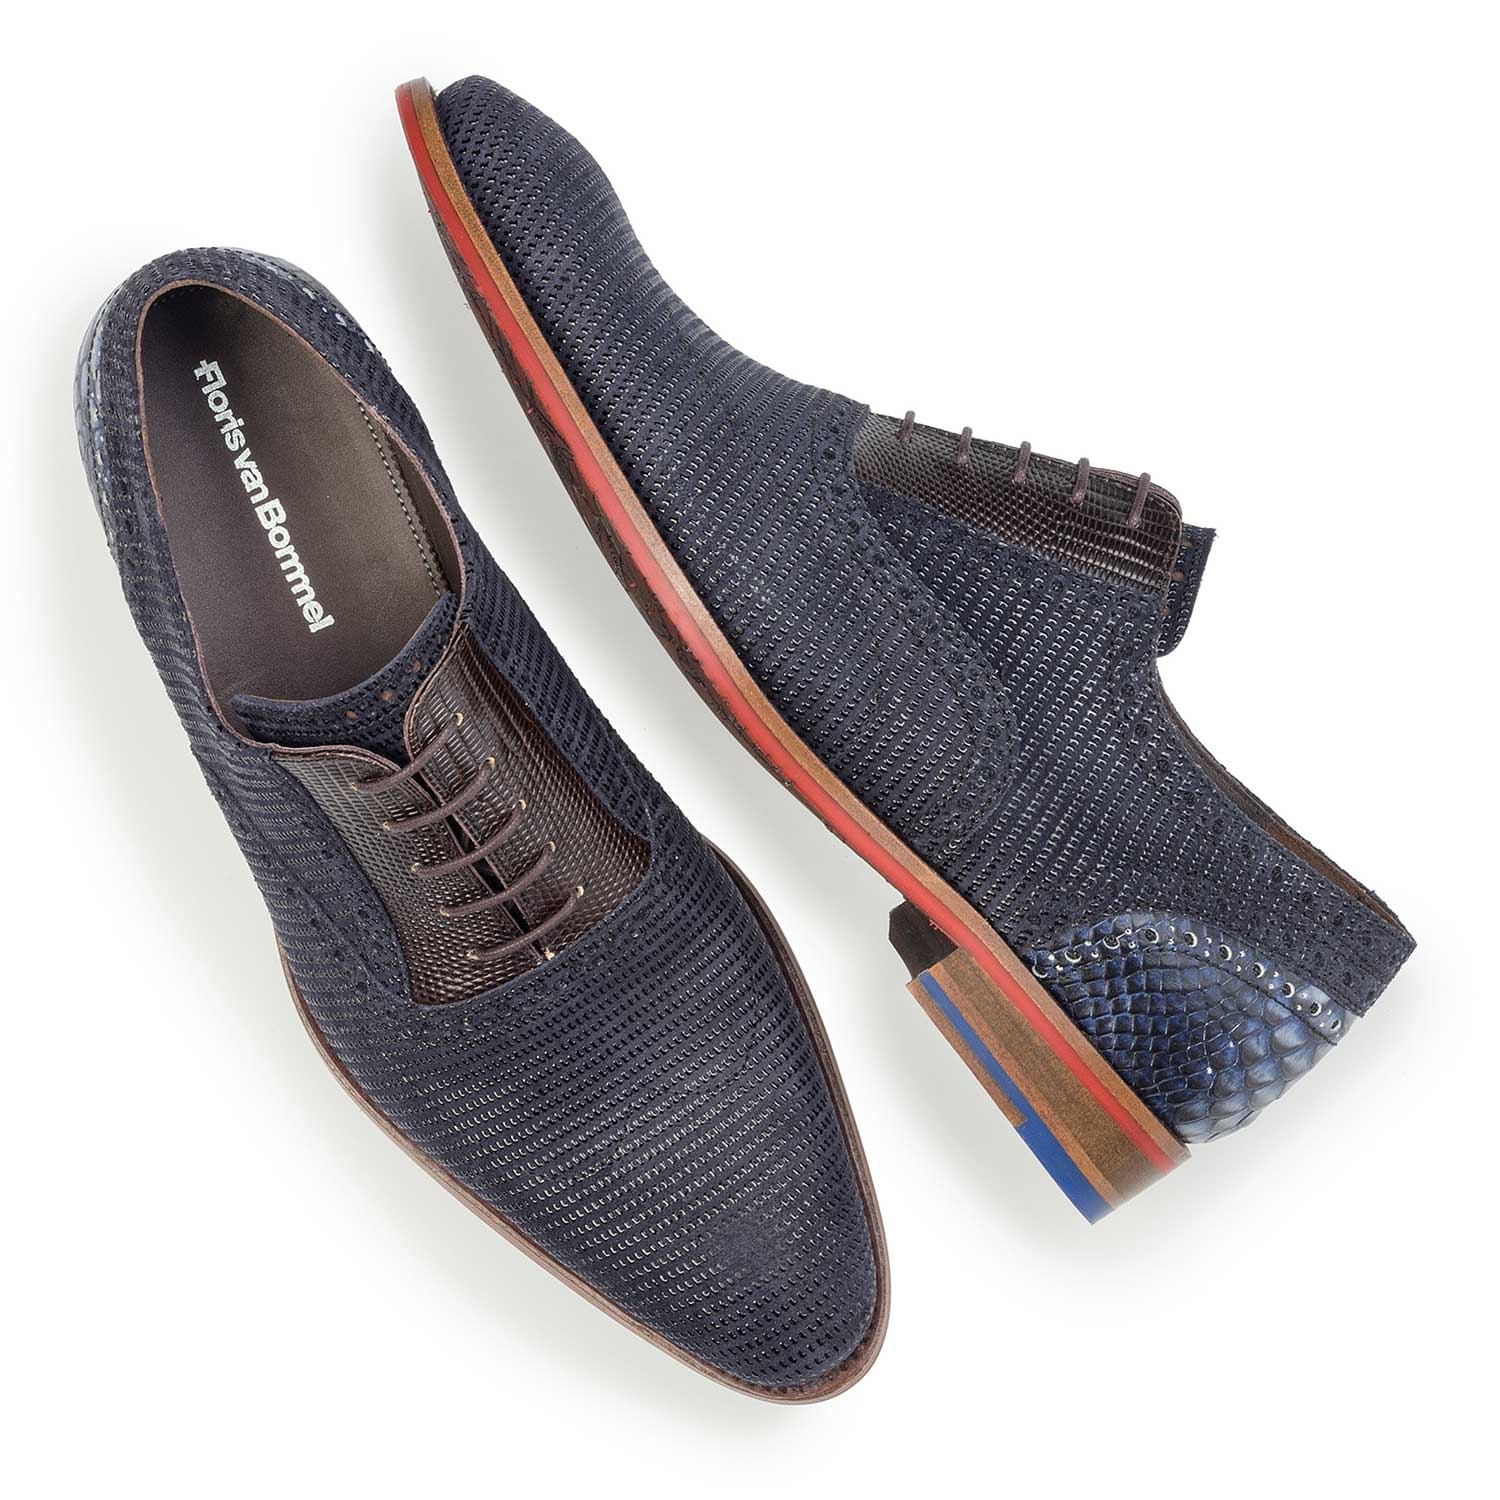 19114/09 - Dark blue, patterned suede leather lace shoe